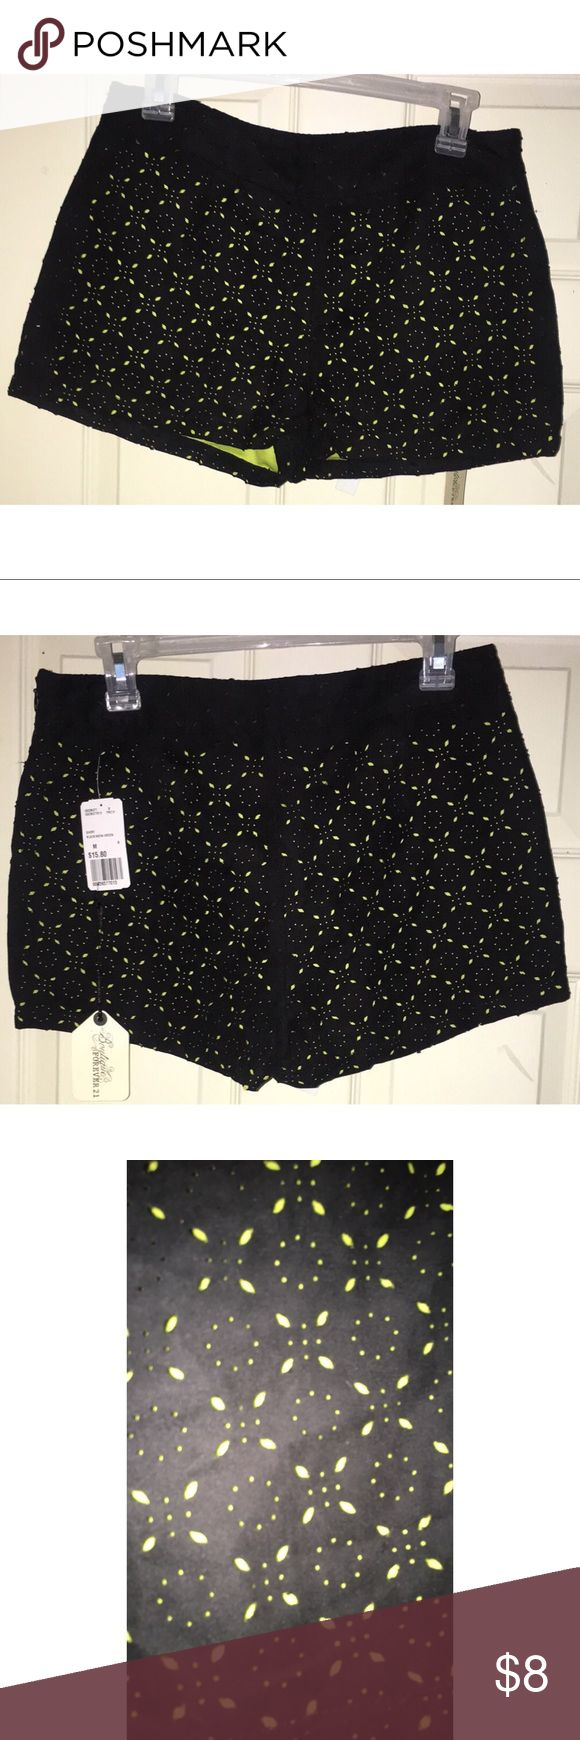 Suede Cut-out Black and Neon Green Shorts Suede cutout with neon green underneath Forever 21 Shorts